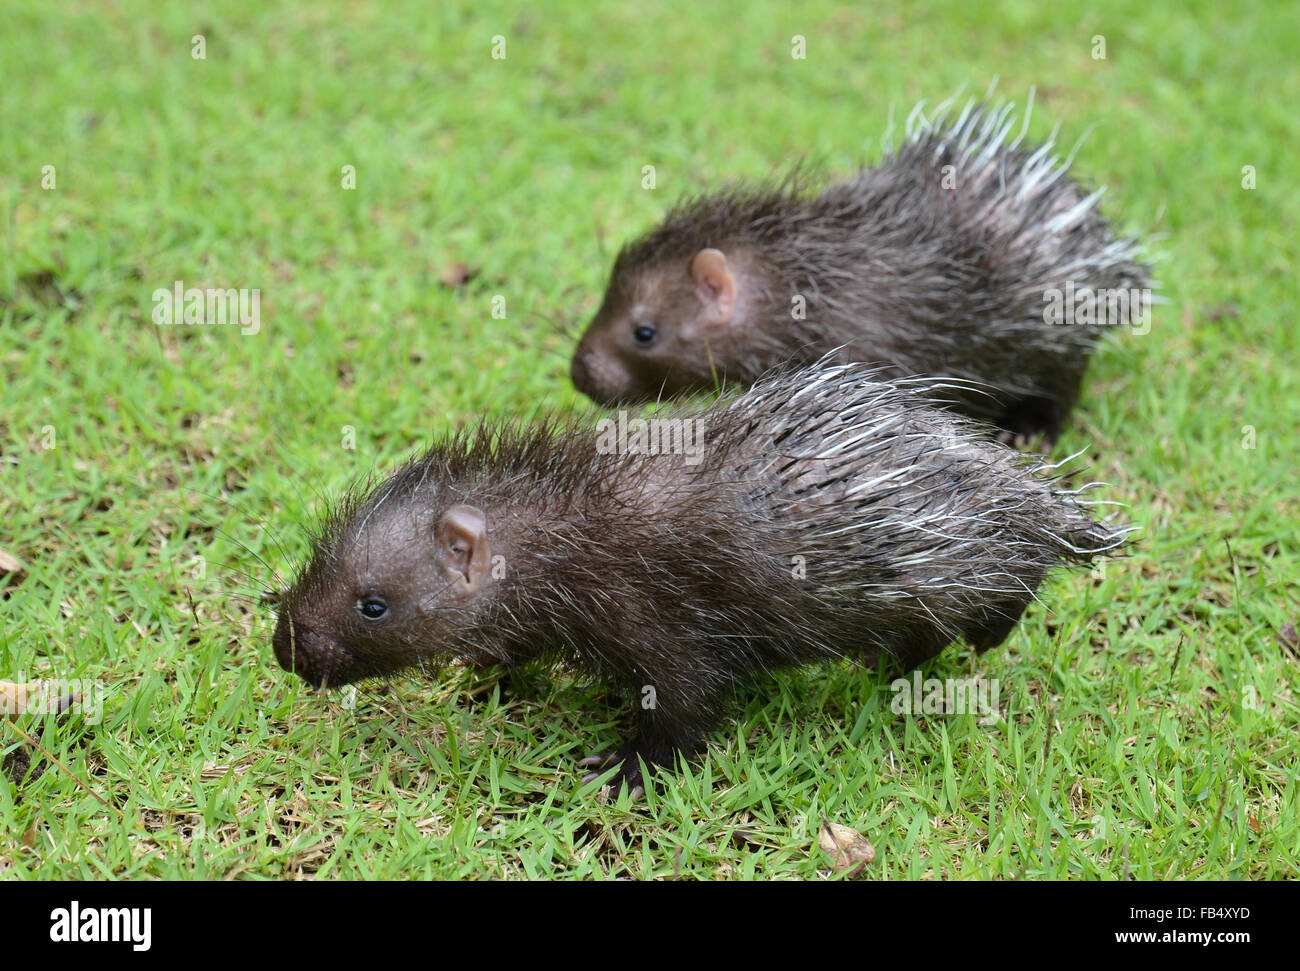 baby porcupine ( Hystrix brachyura ) walking on green grass - Stock Image